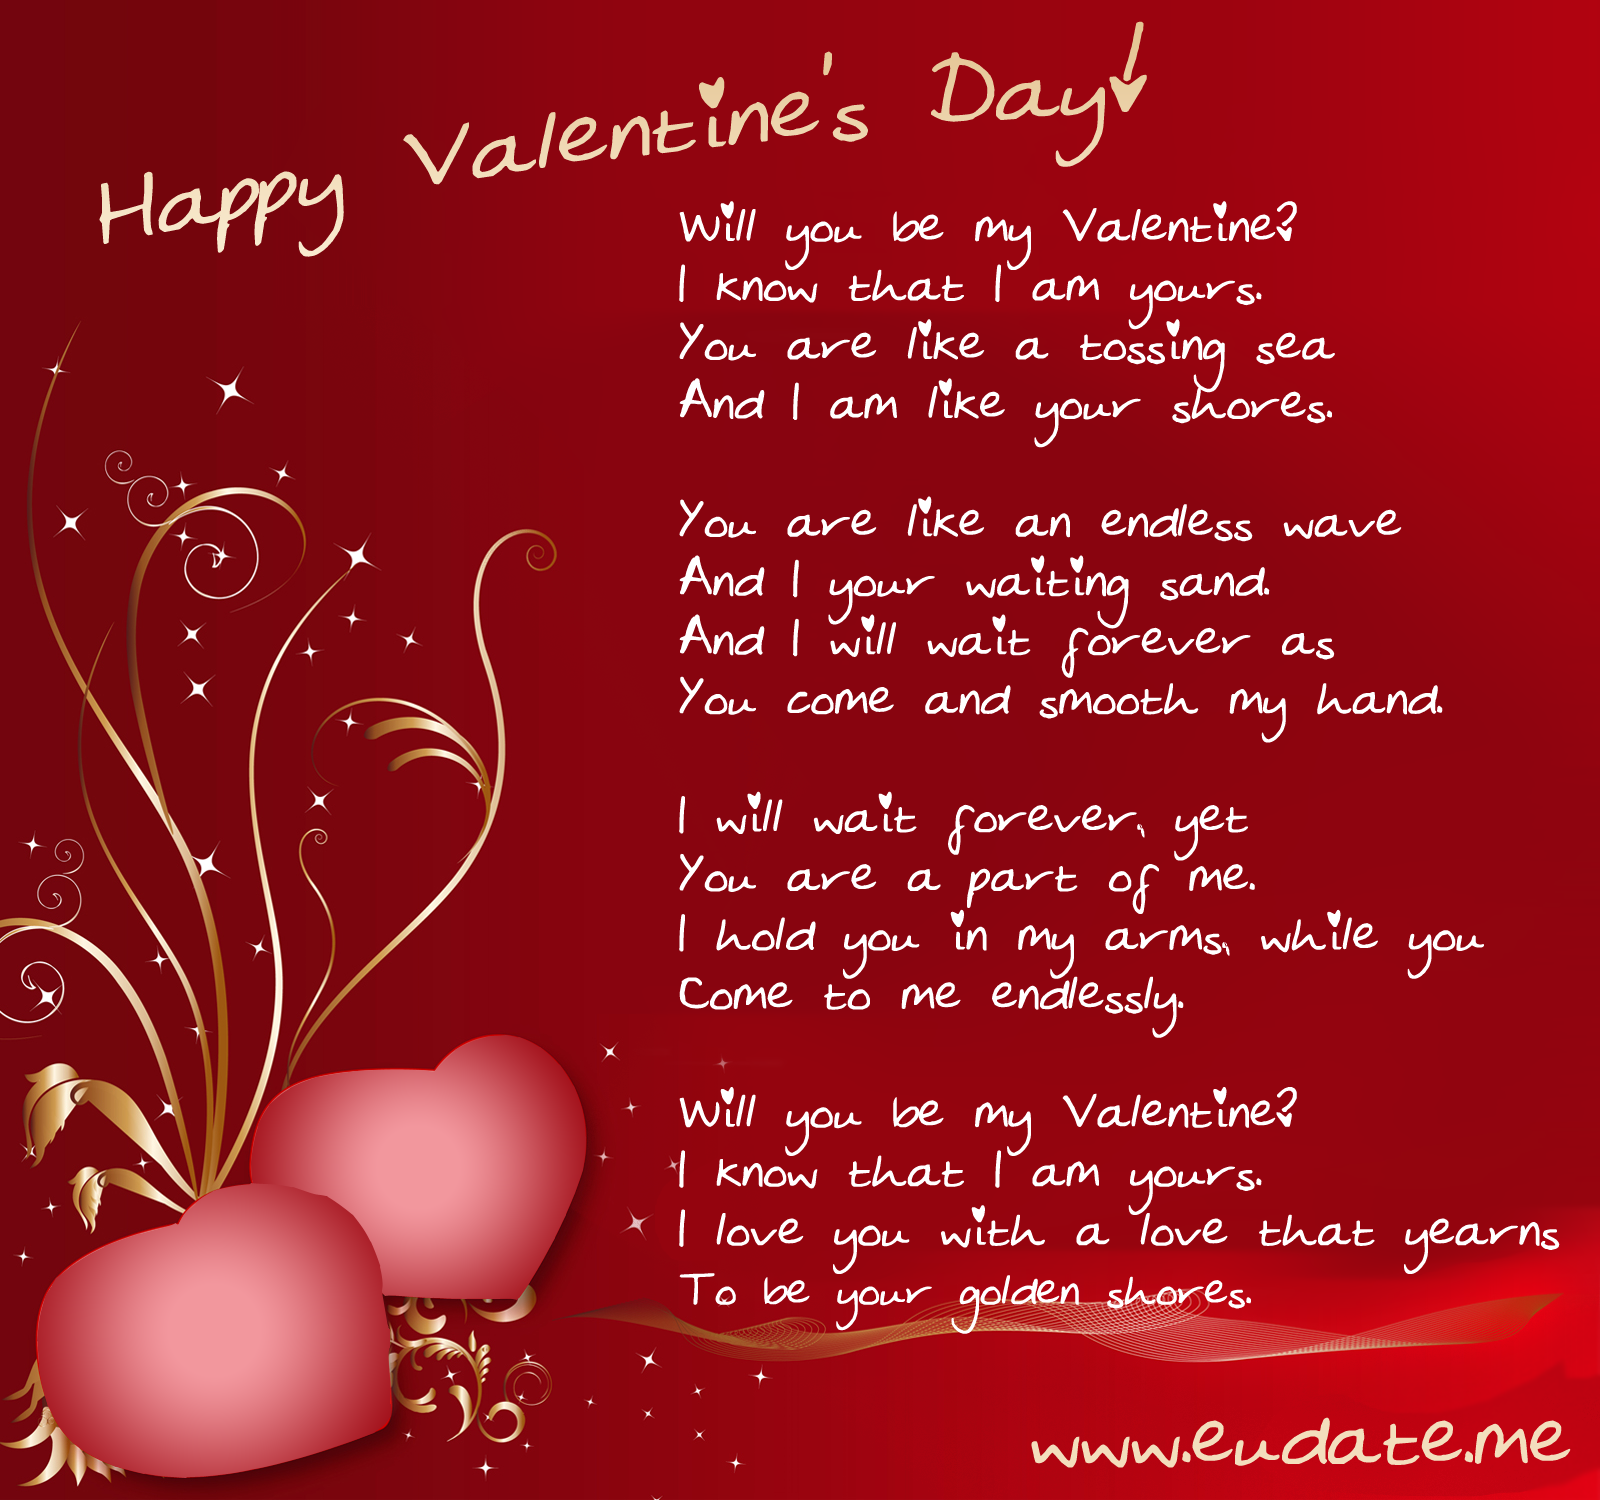 Will you be my Valentine I know that I am yours Happy Valentine – Valentine Cards Message